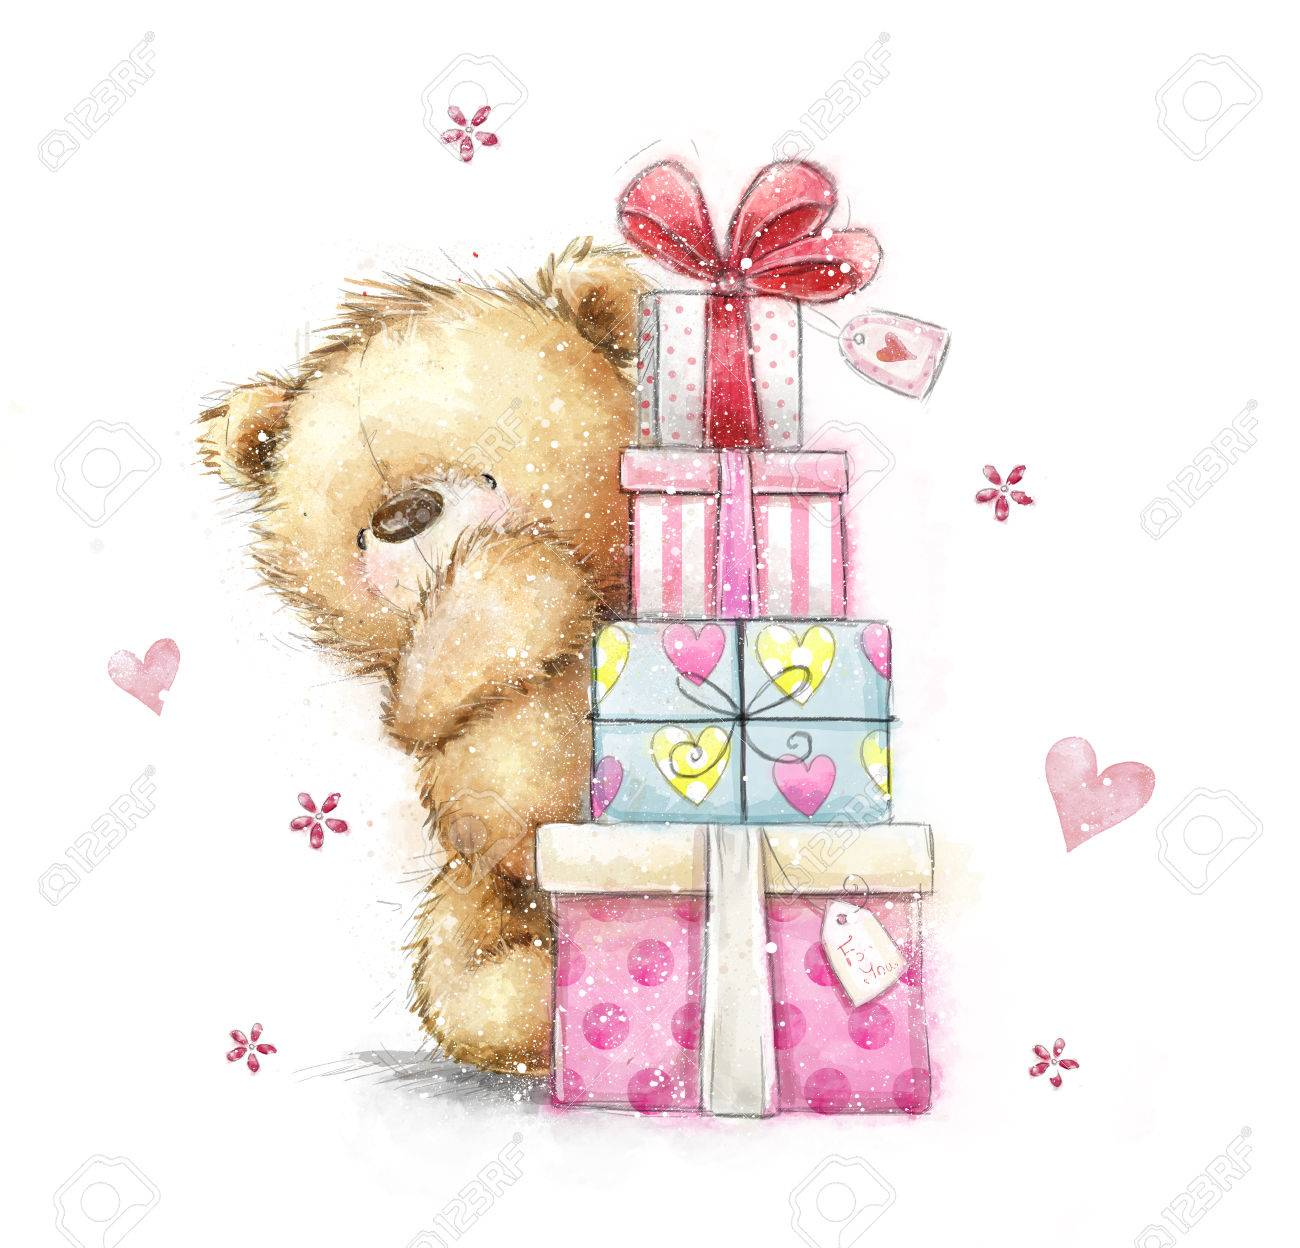 Teddy bear with the giftshand drawn teddy bear isolated on white stock photo teddy bear with the giftshand drawn teddy bear isolated on white background happy birthday card gifts bow gift boxes hearts bookmarktalkfo Images